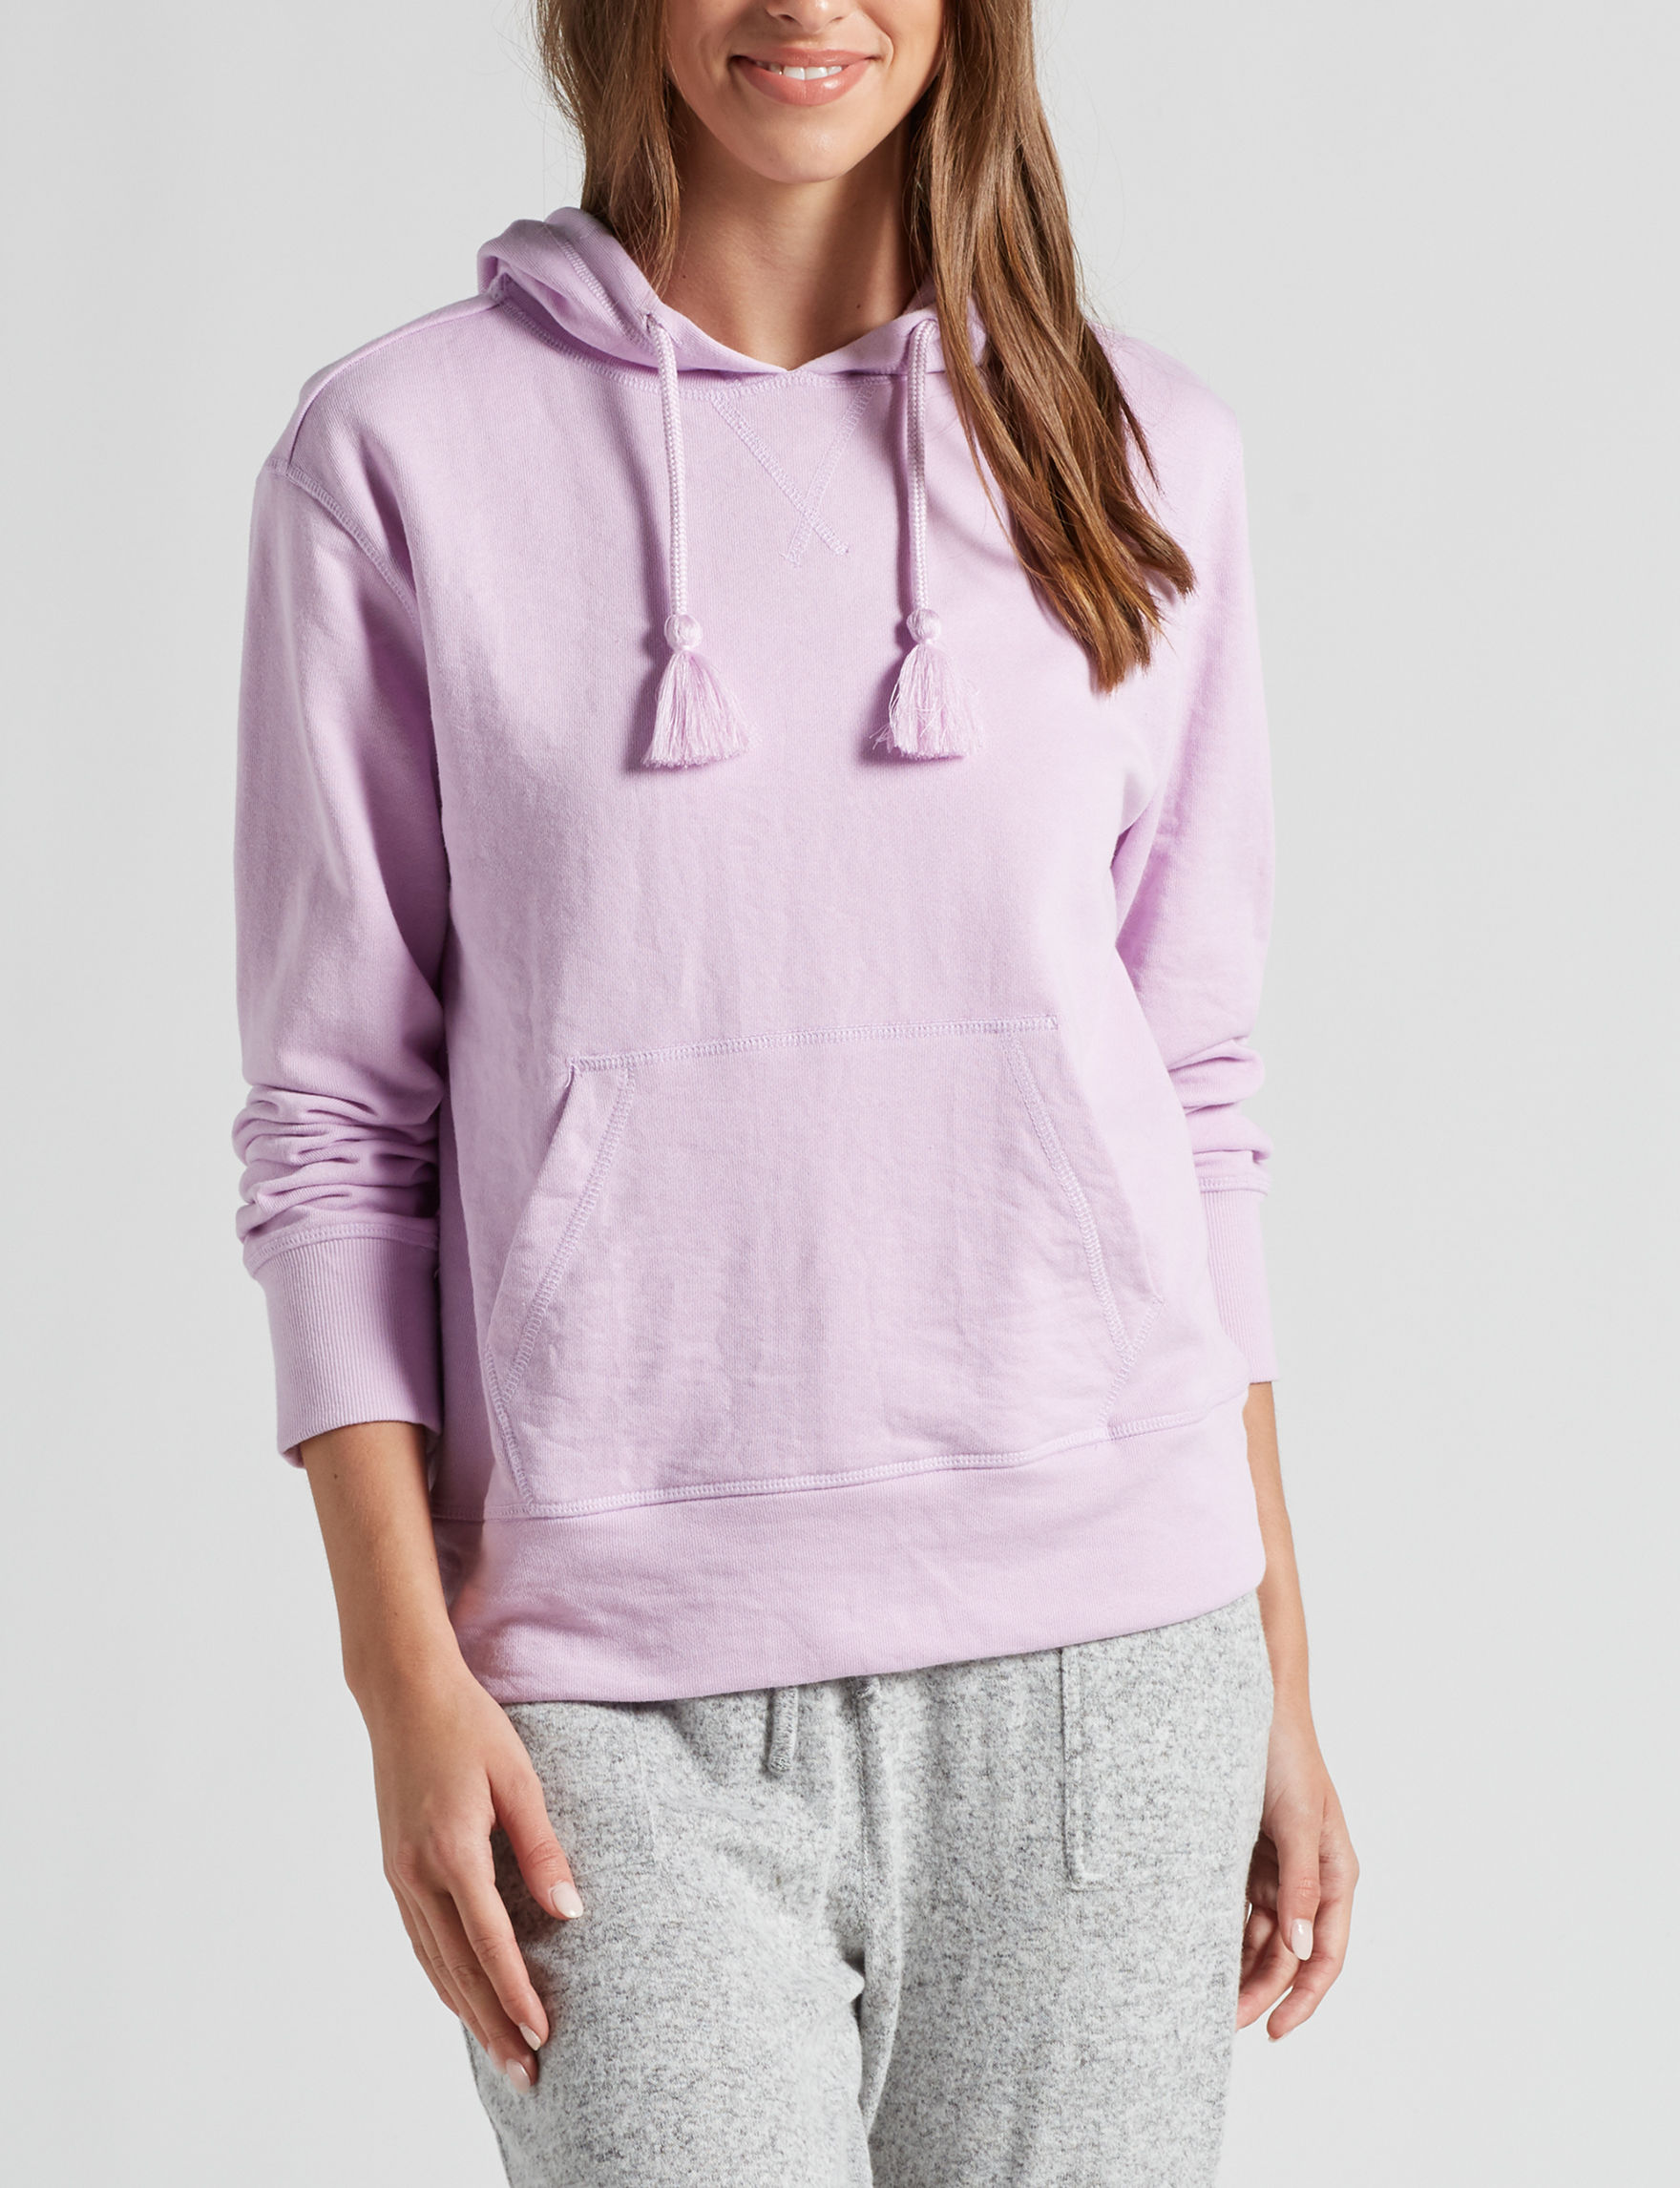 Signature Studio Lavender Pull-overs Shirts & Blouses